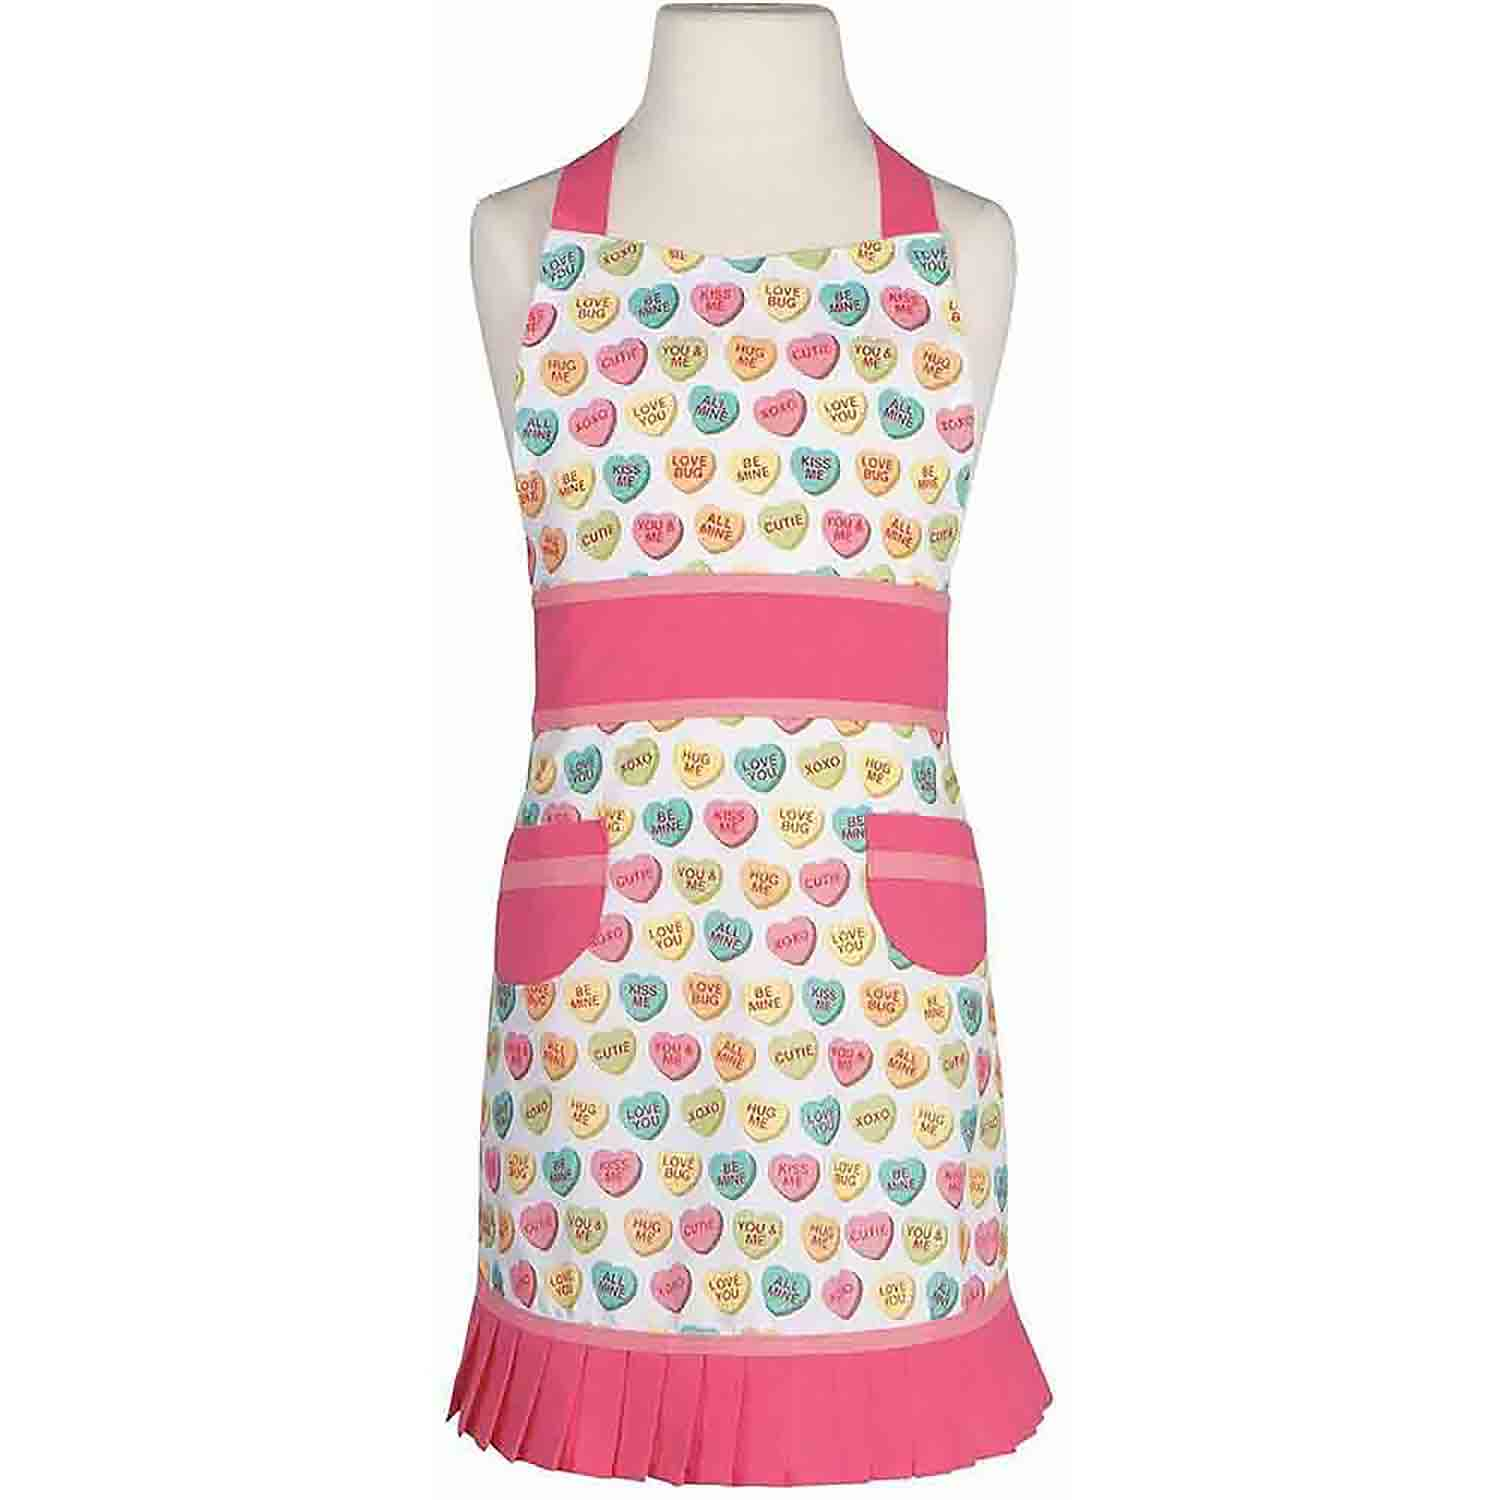 Kid's Apron - Sweet Hearts